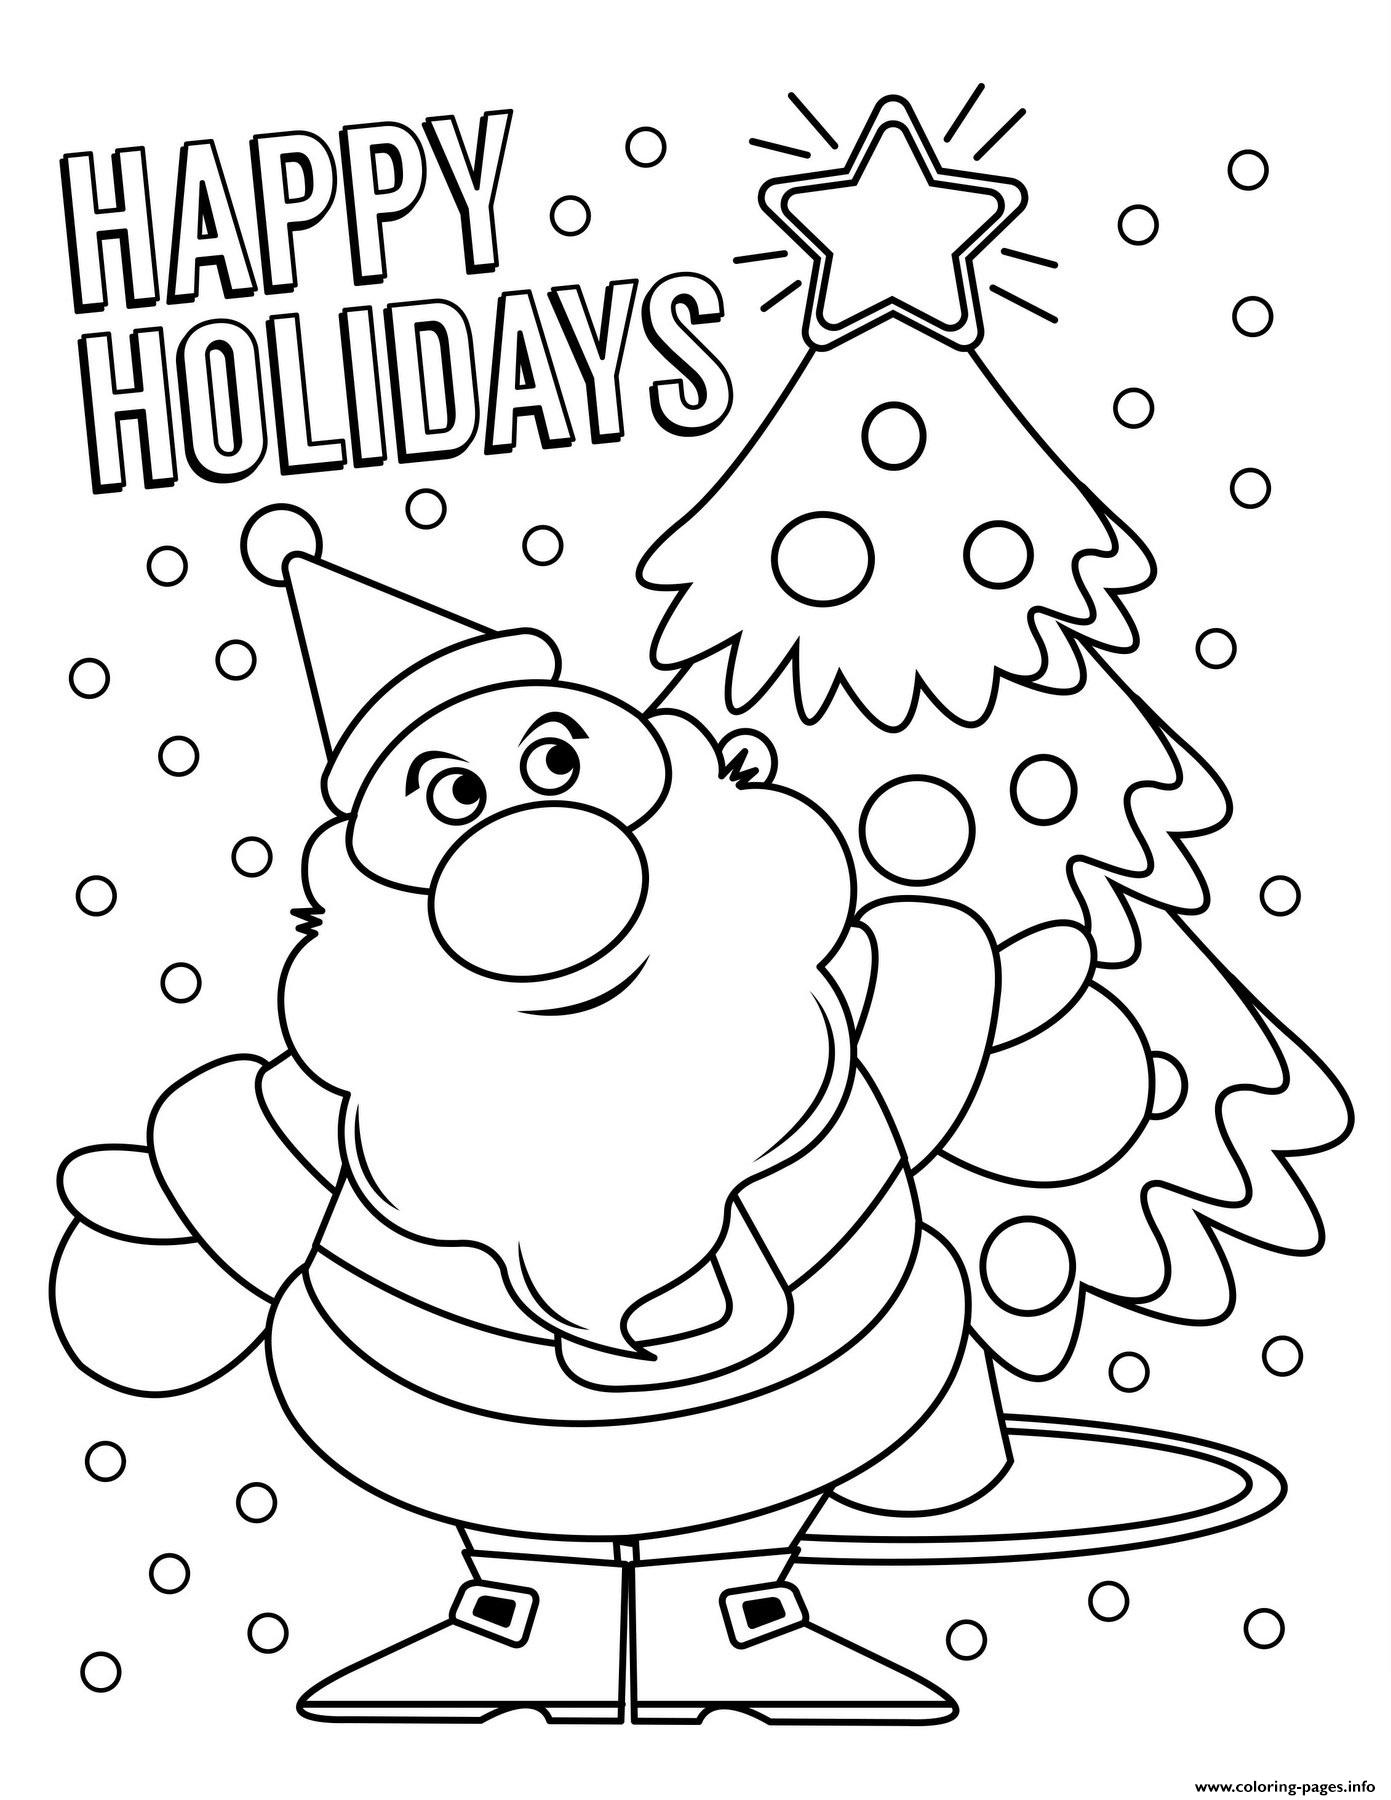 Happy Holidays Santa Claus Coloring Pages Printable